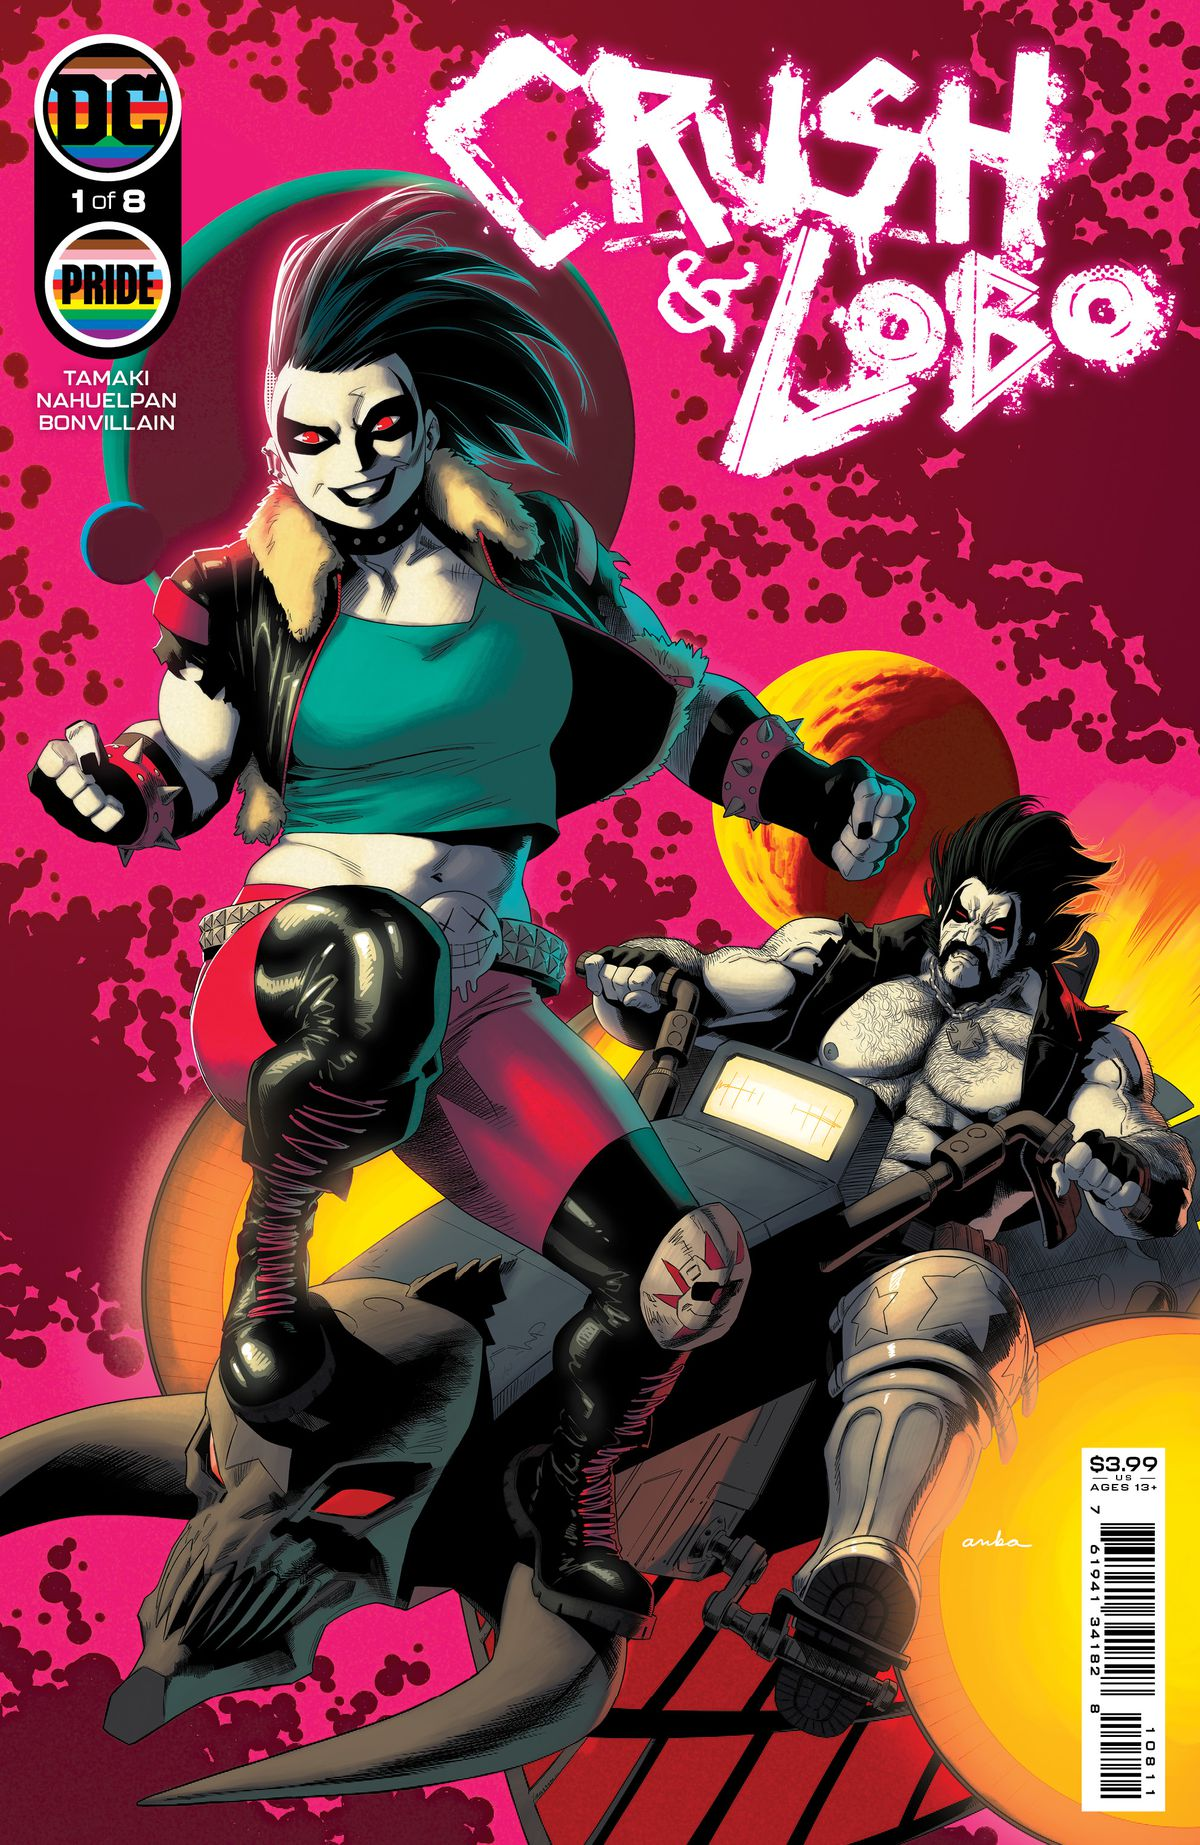 Crush, with her mowhawk and leather jacket, poses on the front of Lobo's space motorcycle, as they zip through the cosmos. Both have the white skin and Kiss-front man type black eye markings of the Tsarnian people, on the cover of Crush & Lobo #1, DC Comics (2021).